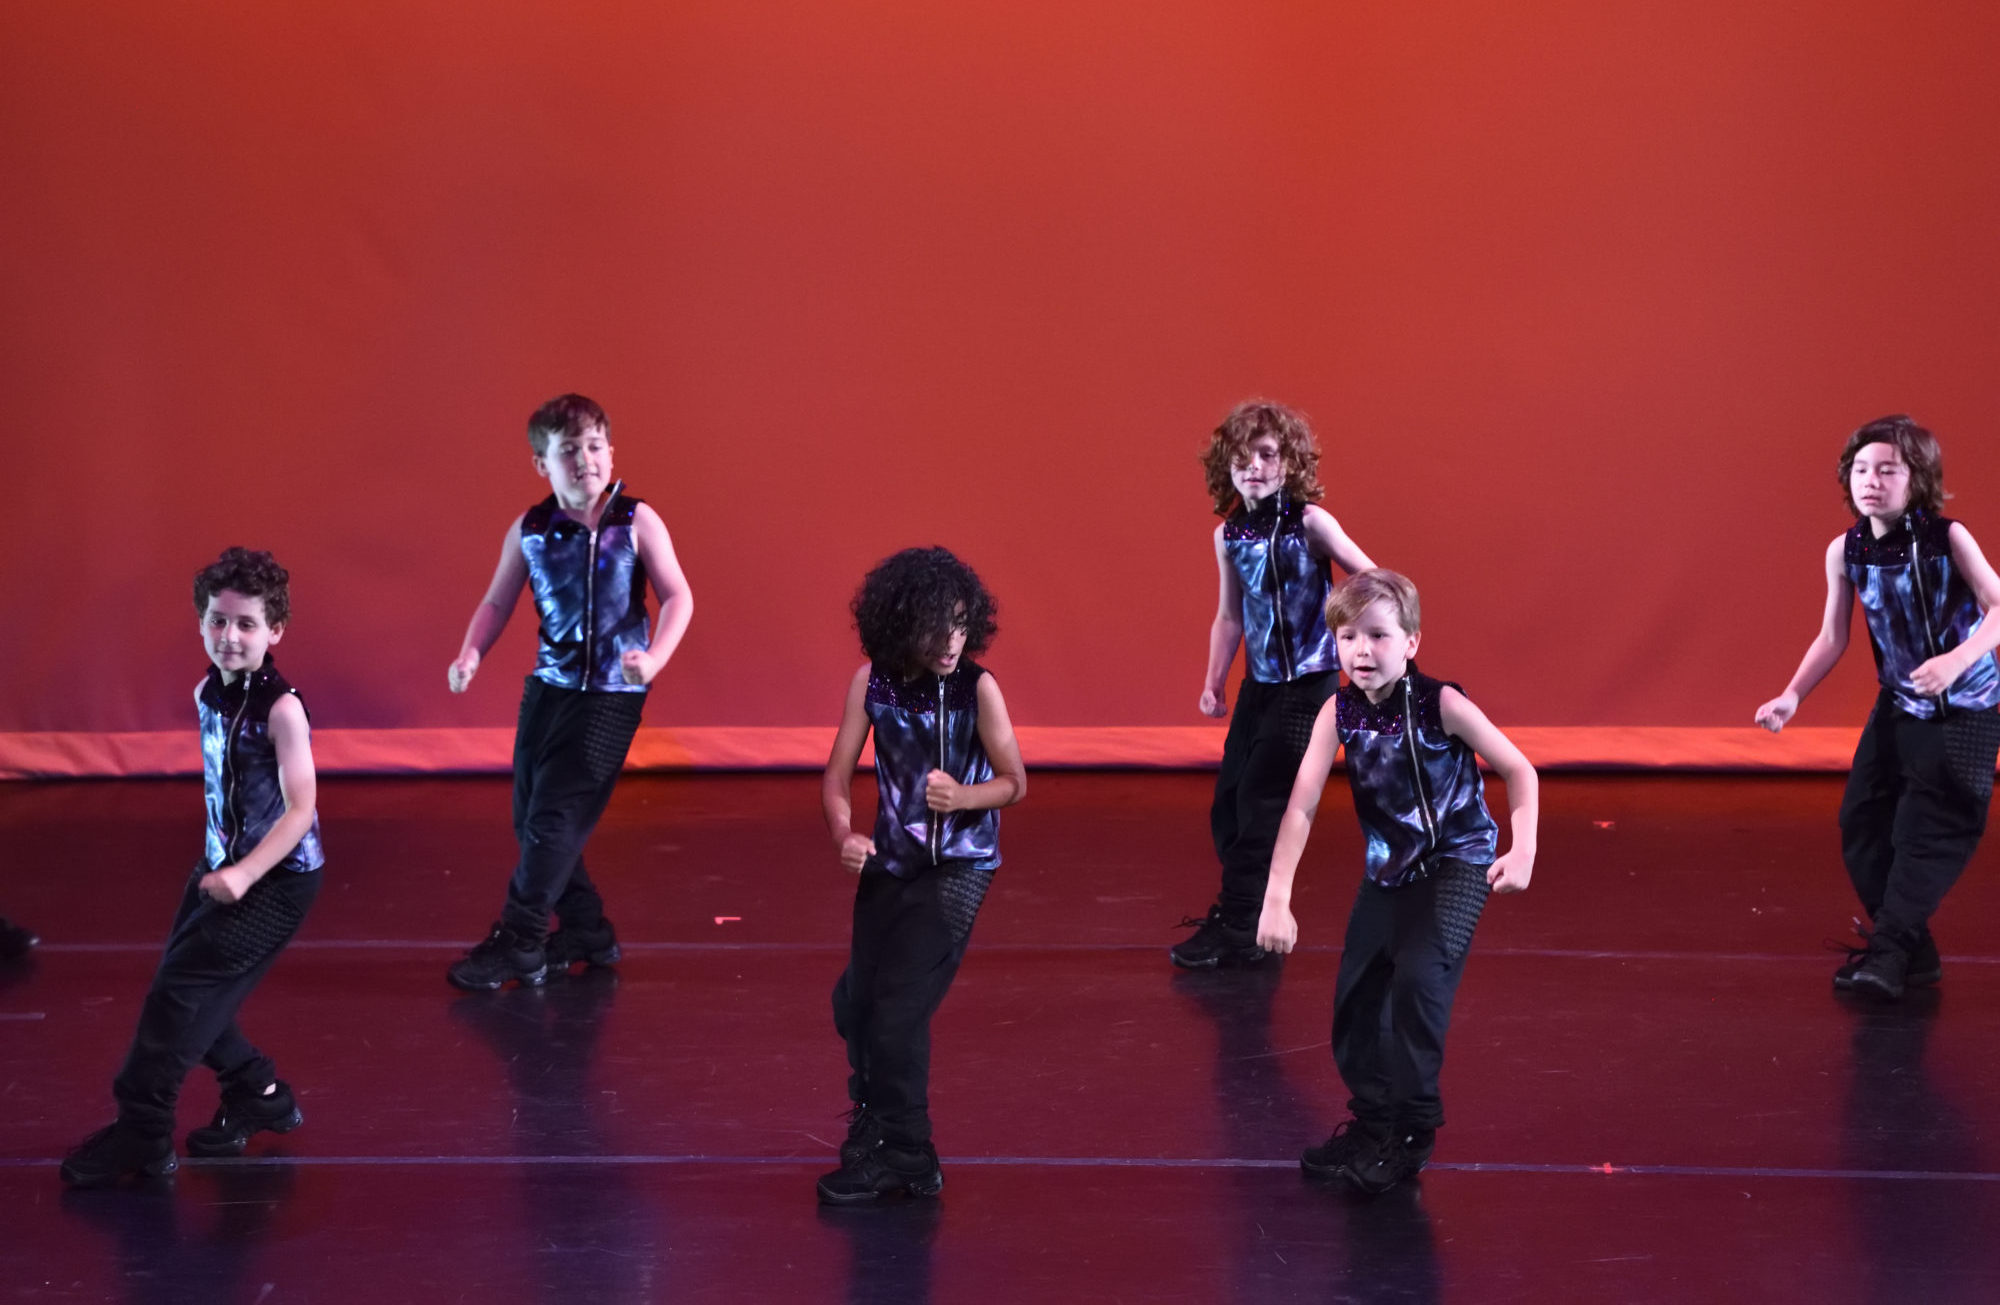 American Youth Dance Theater